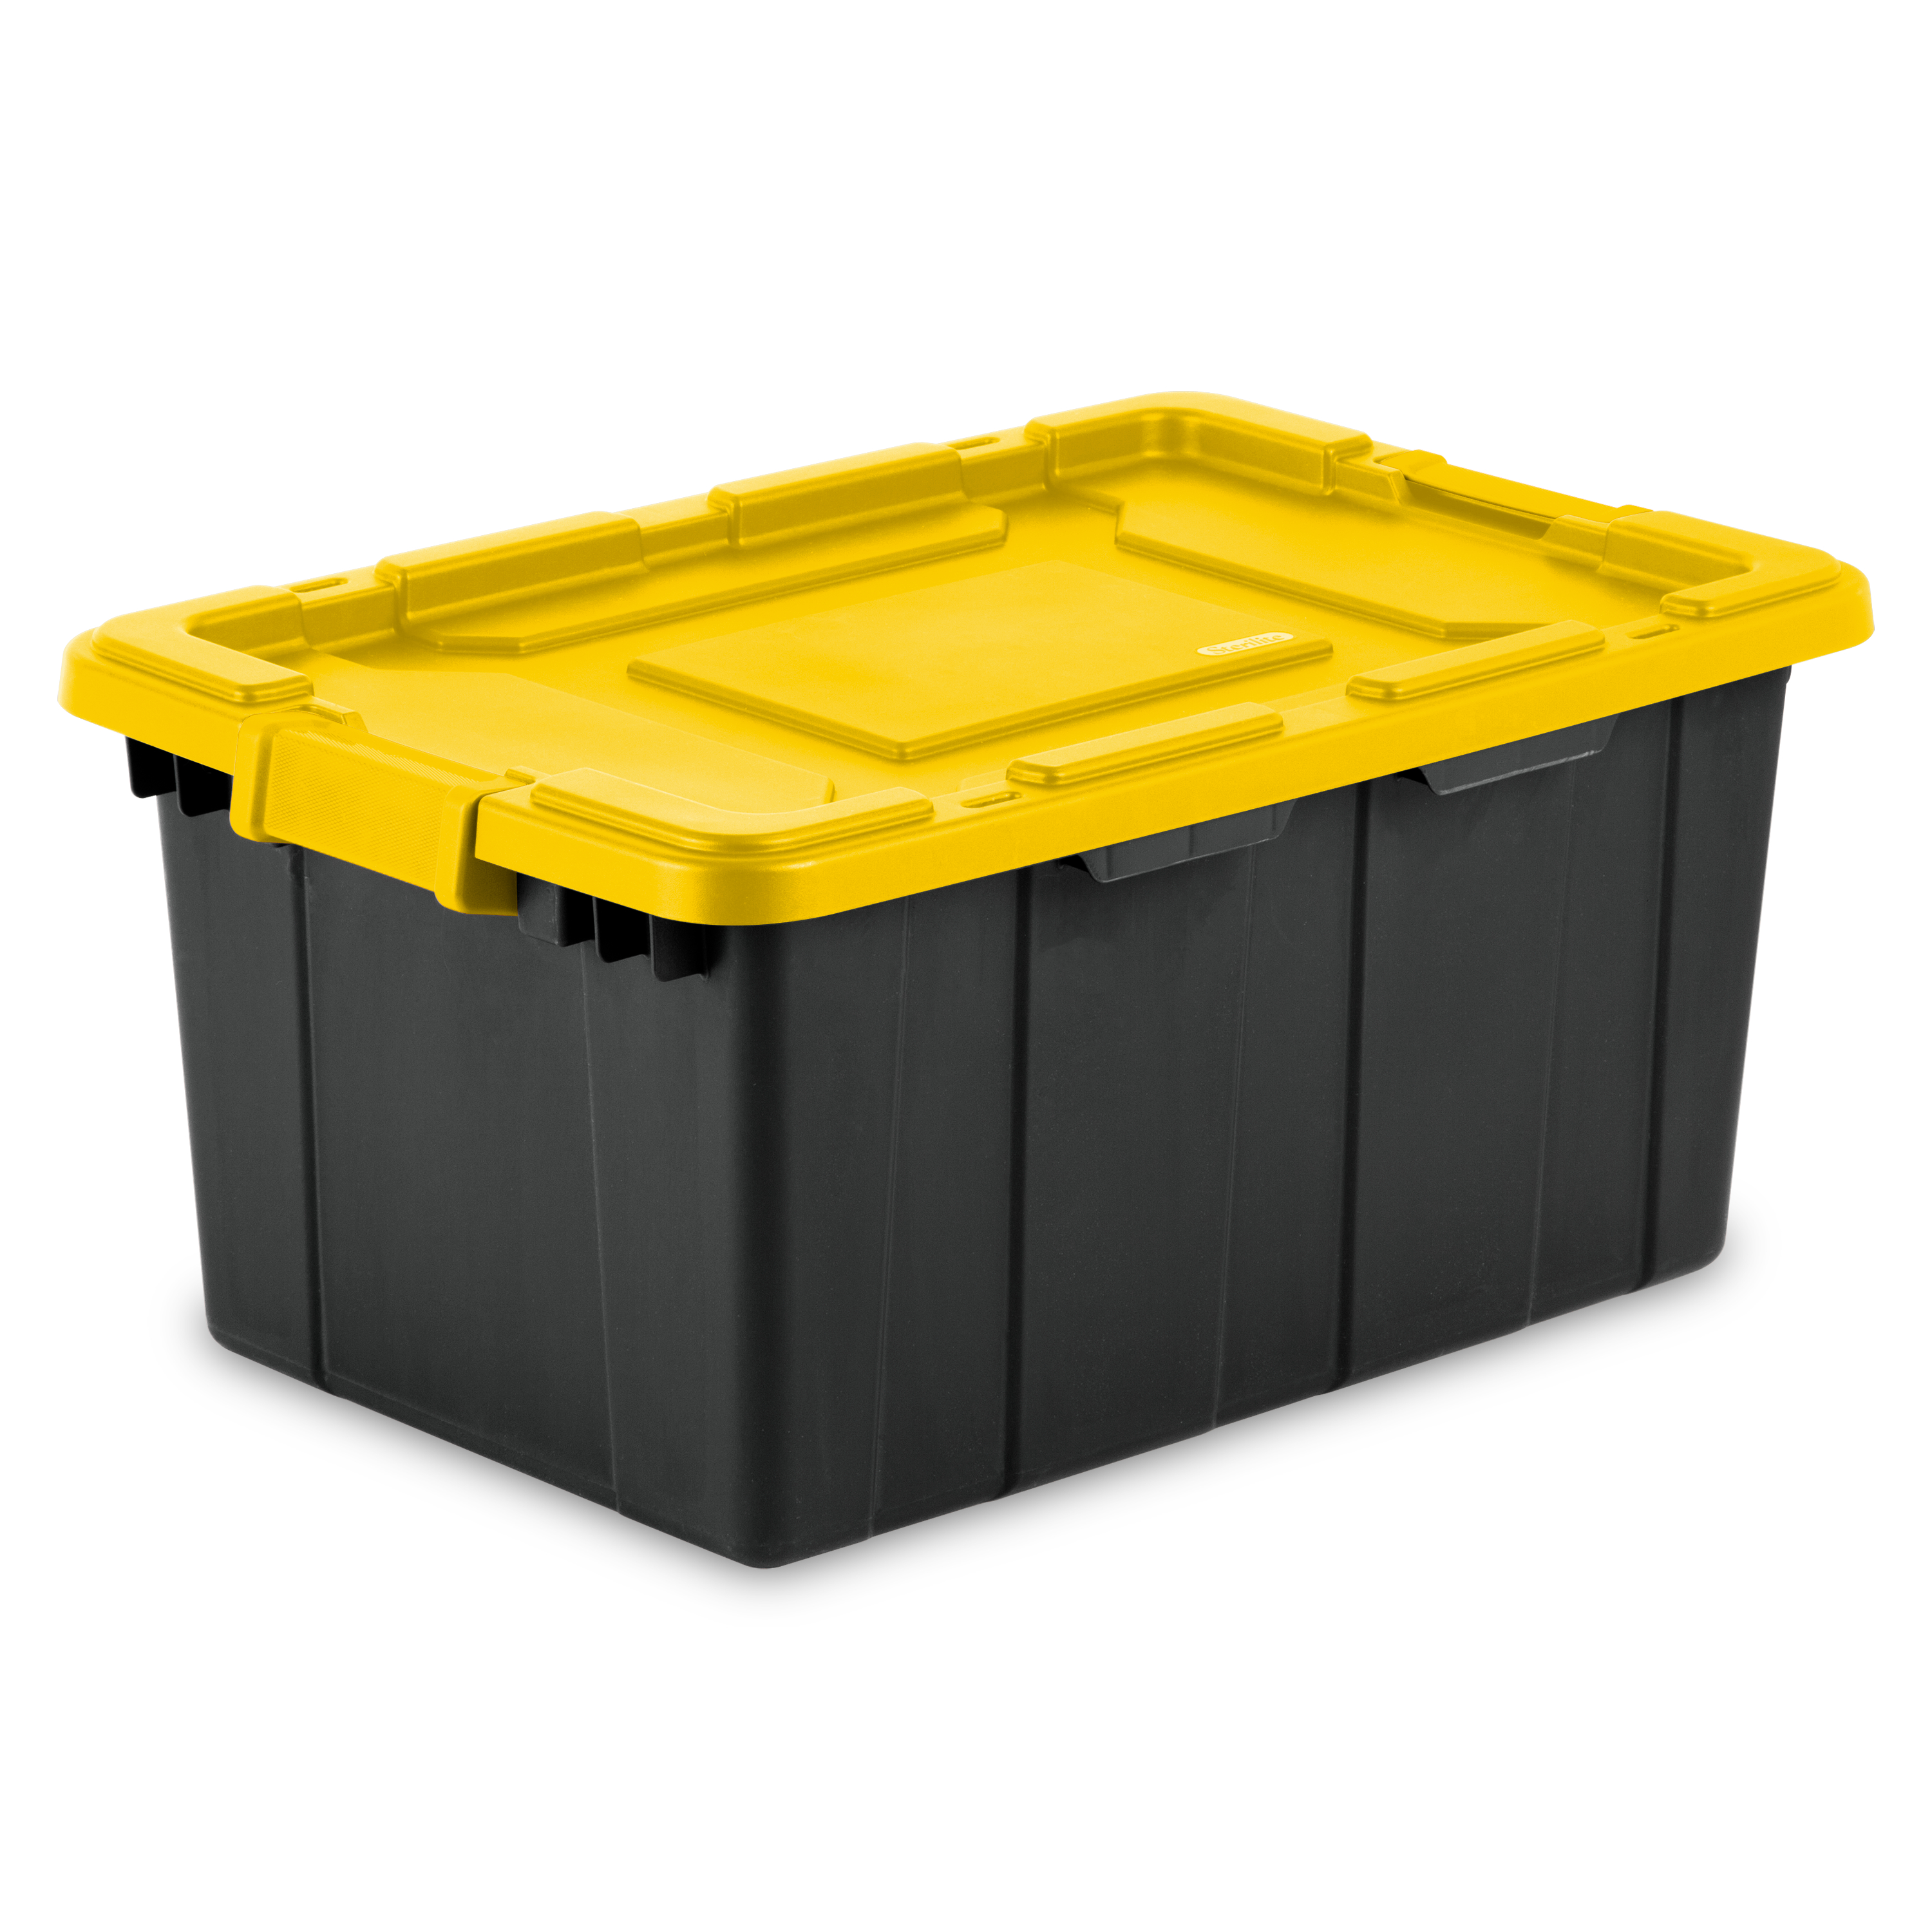 Sterilite, 15 Gal./57 L Industrial Tote, Yellow Lily